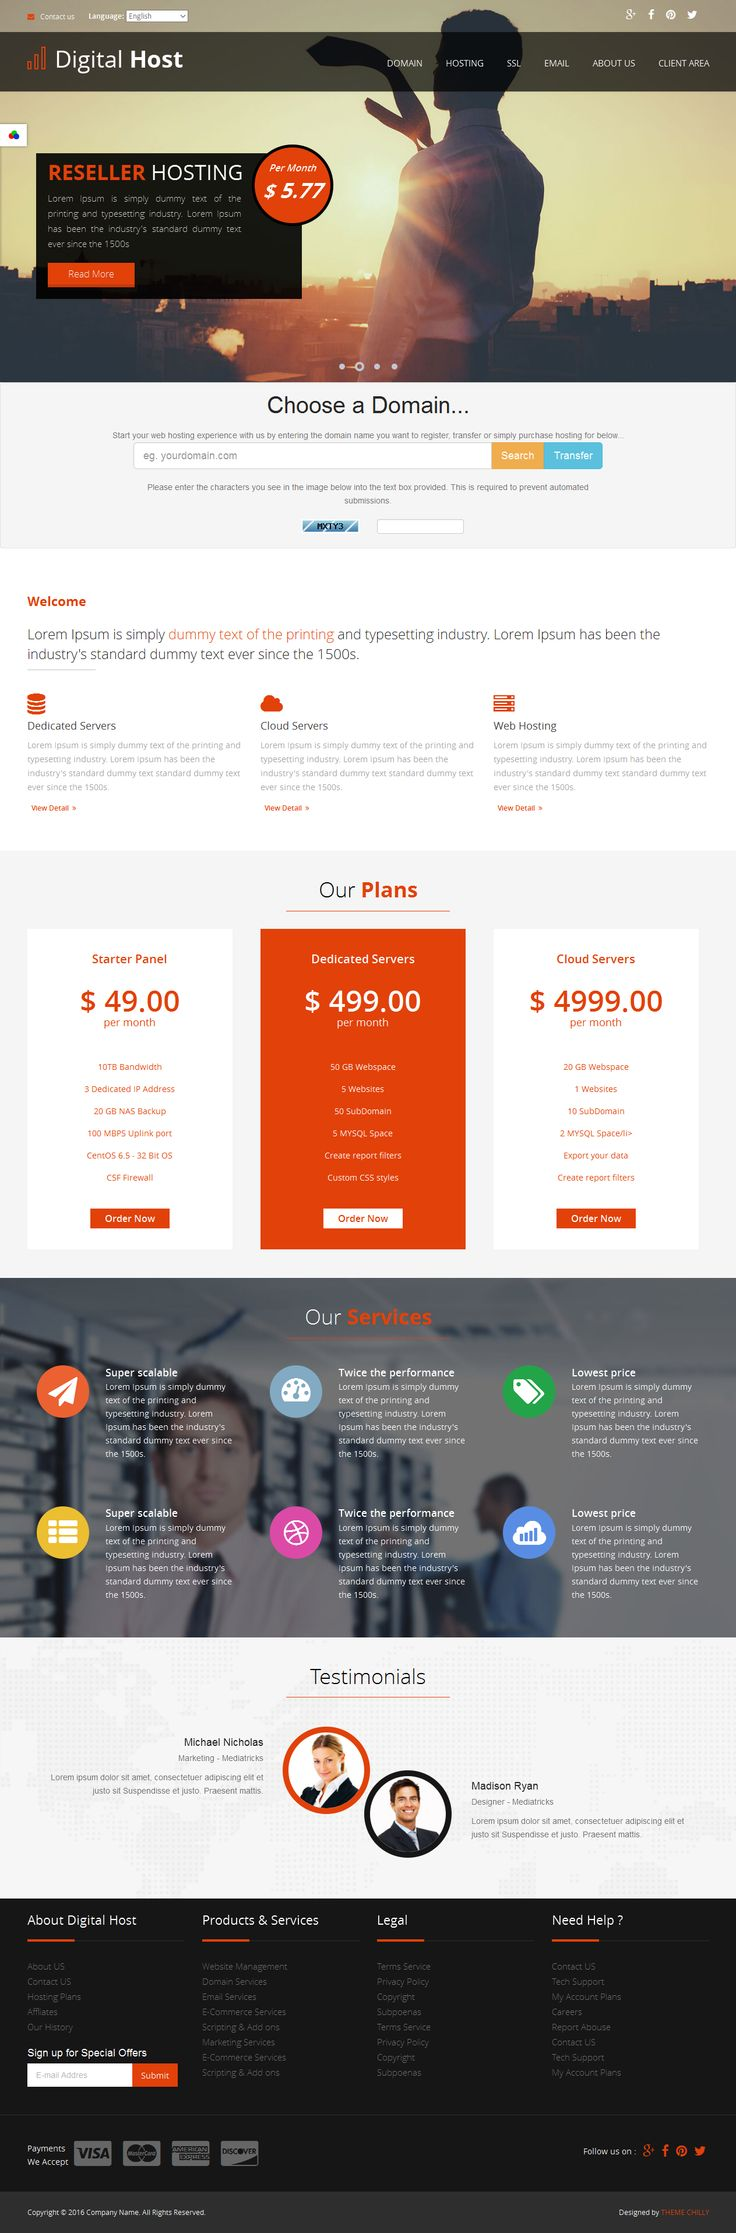 Colors for professional website - Give Profeesional Look To Your Website With Digital Host